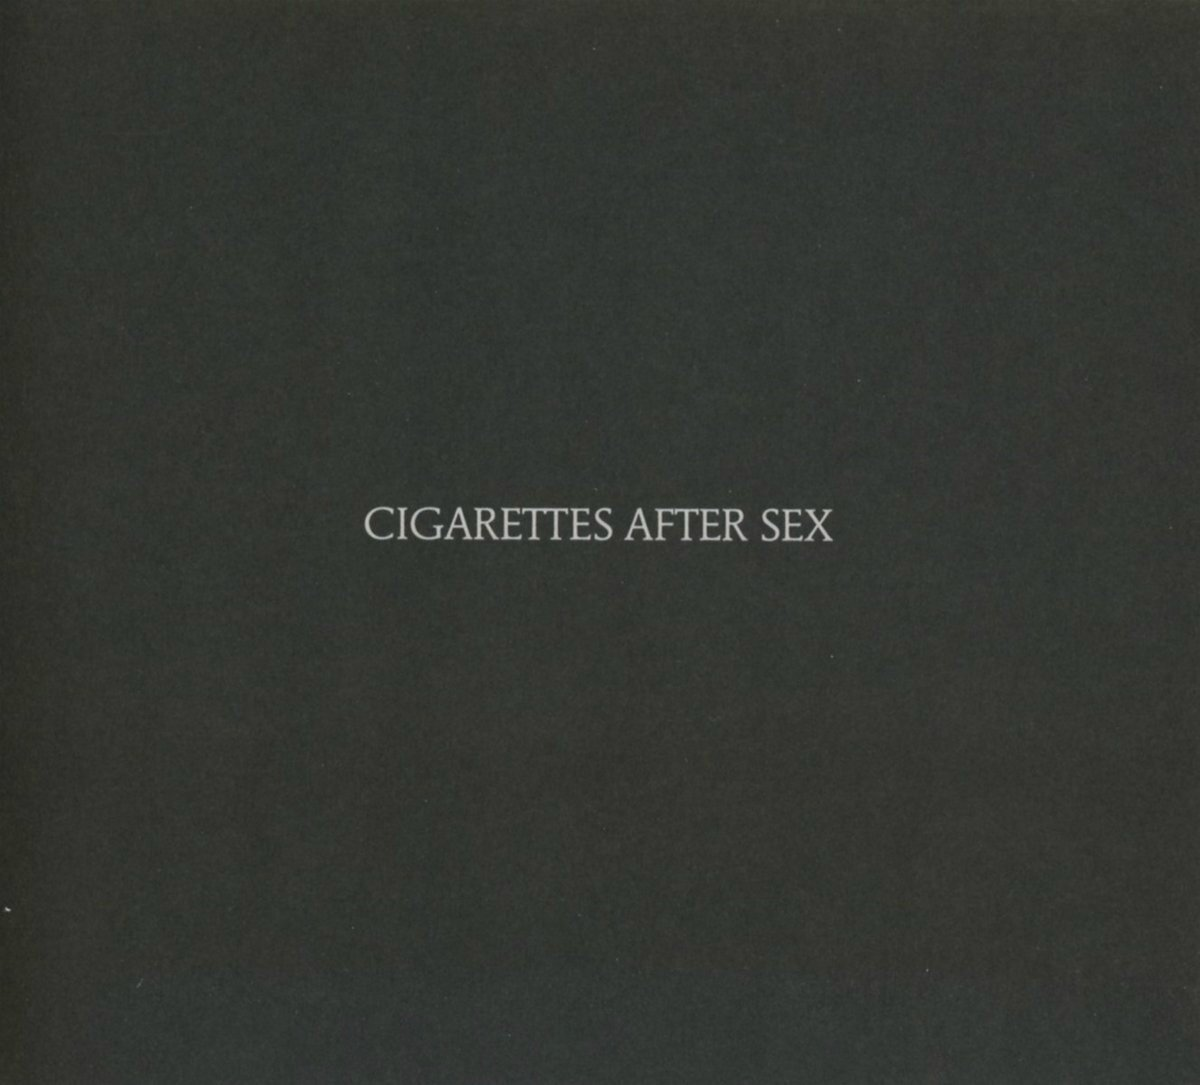 CIGARETTES AFTER SEX – Cigarettes After Sex (2017)